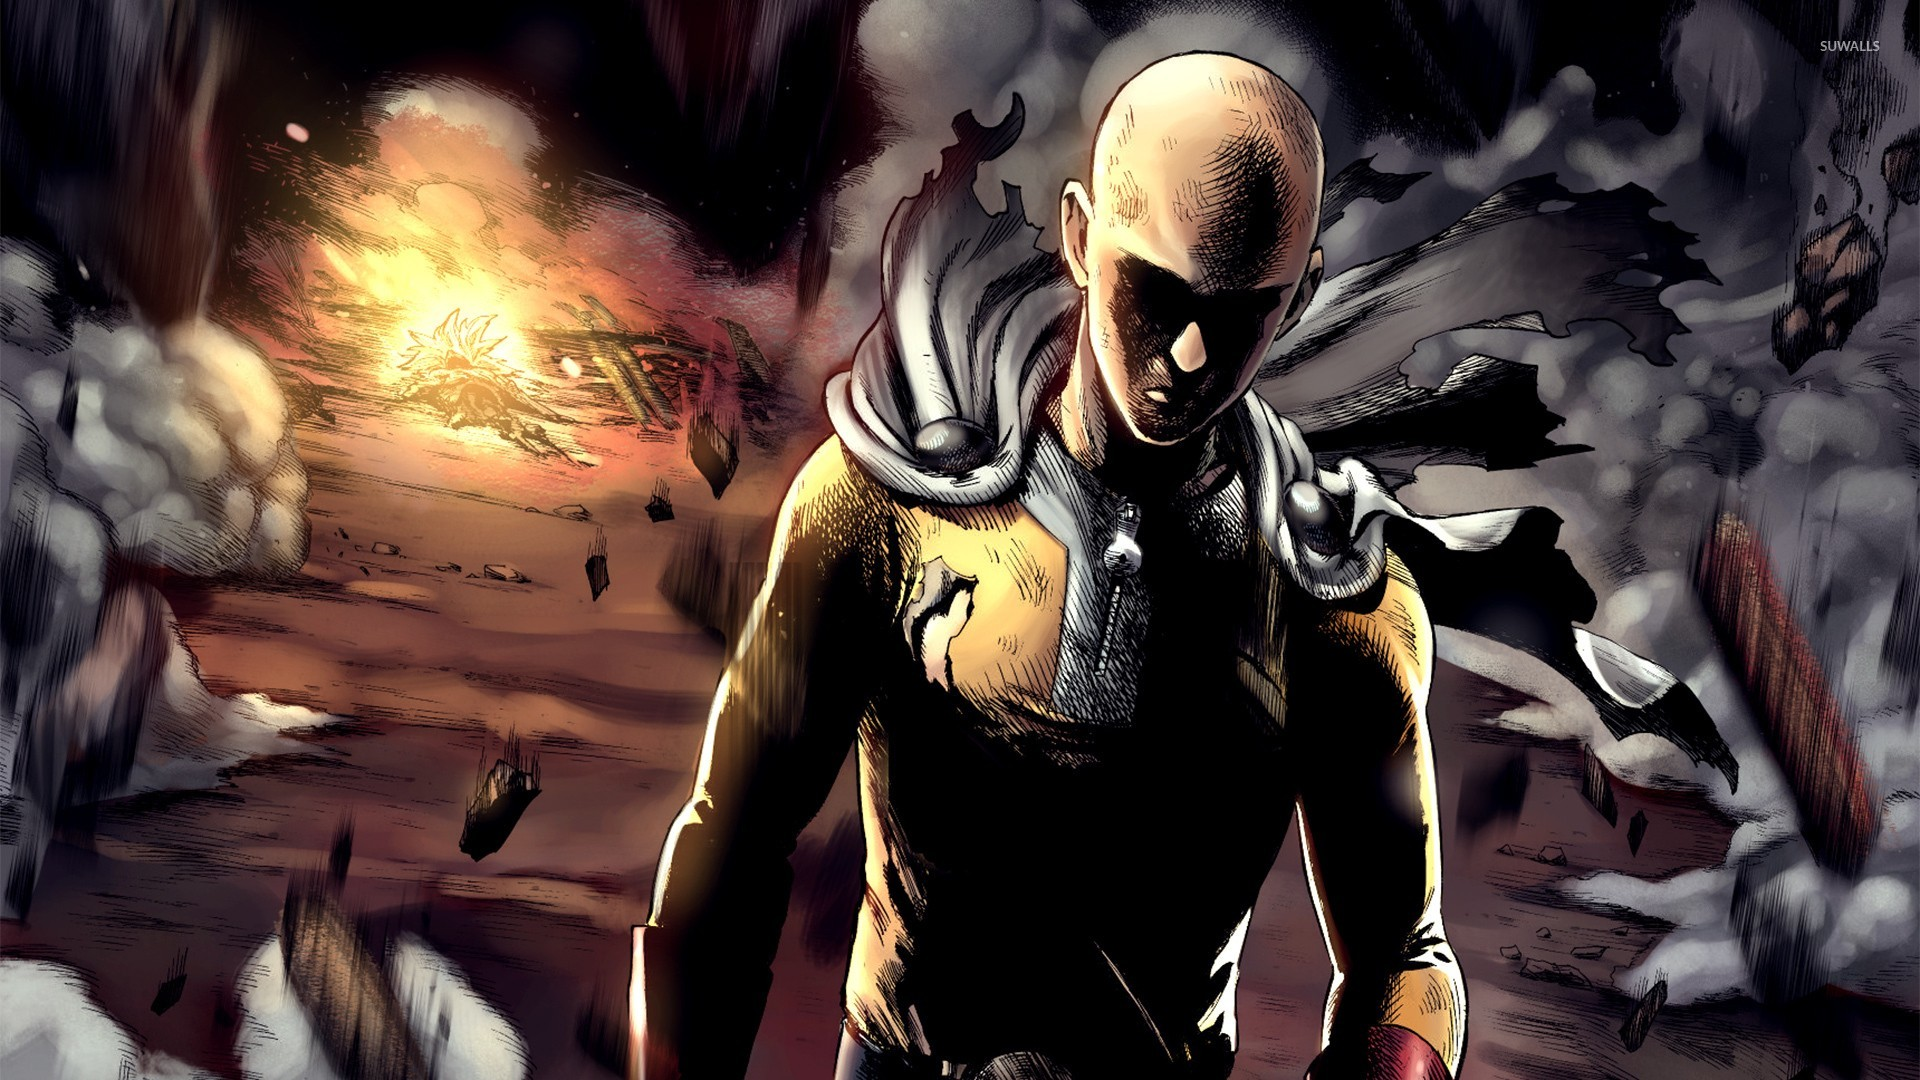 One punch man wallpaper hd 68 images - Funny one punch man wallpaper ...